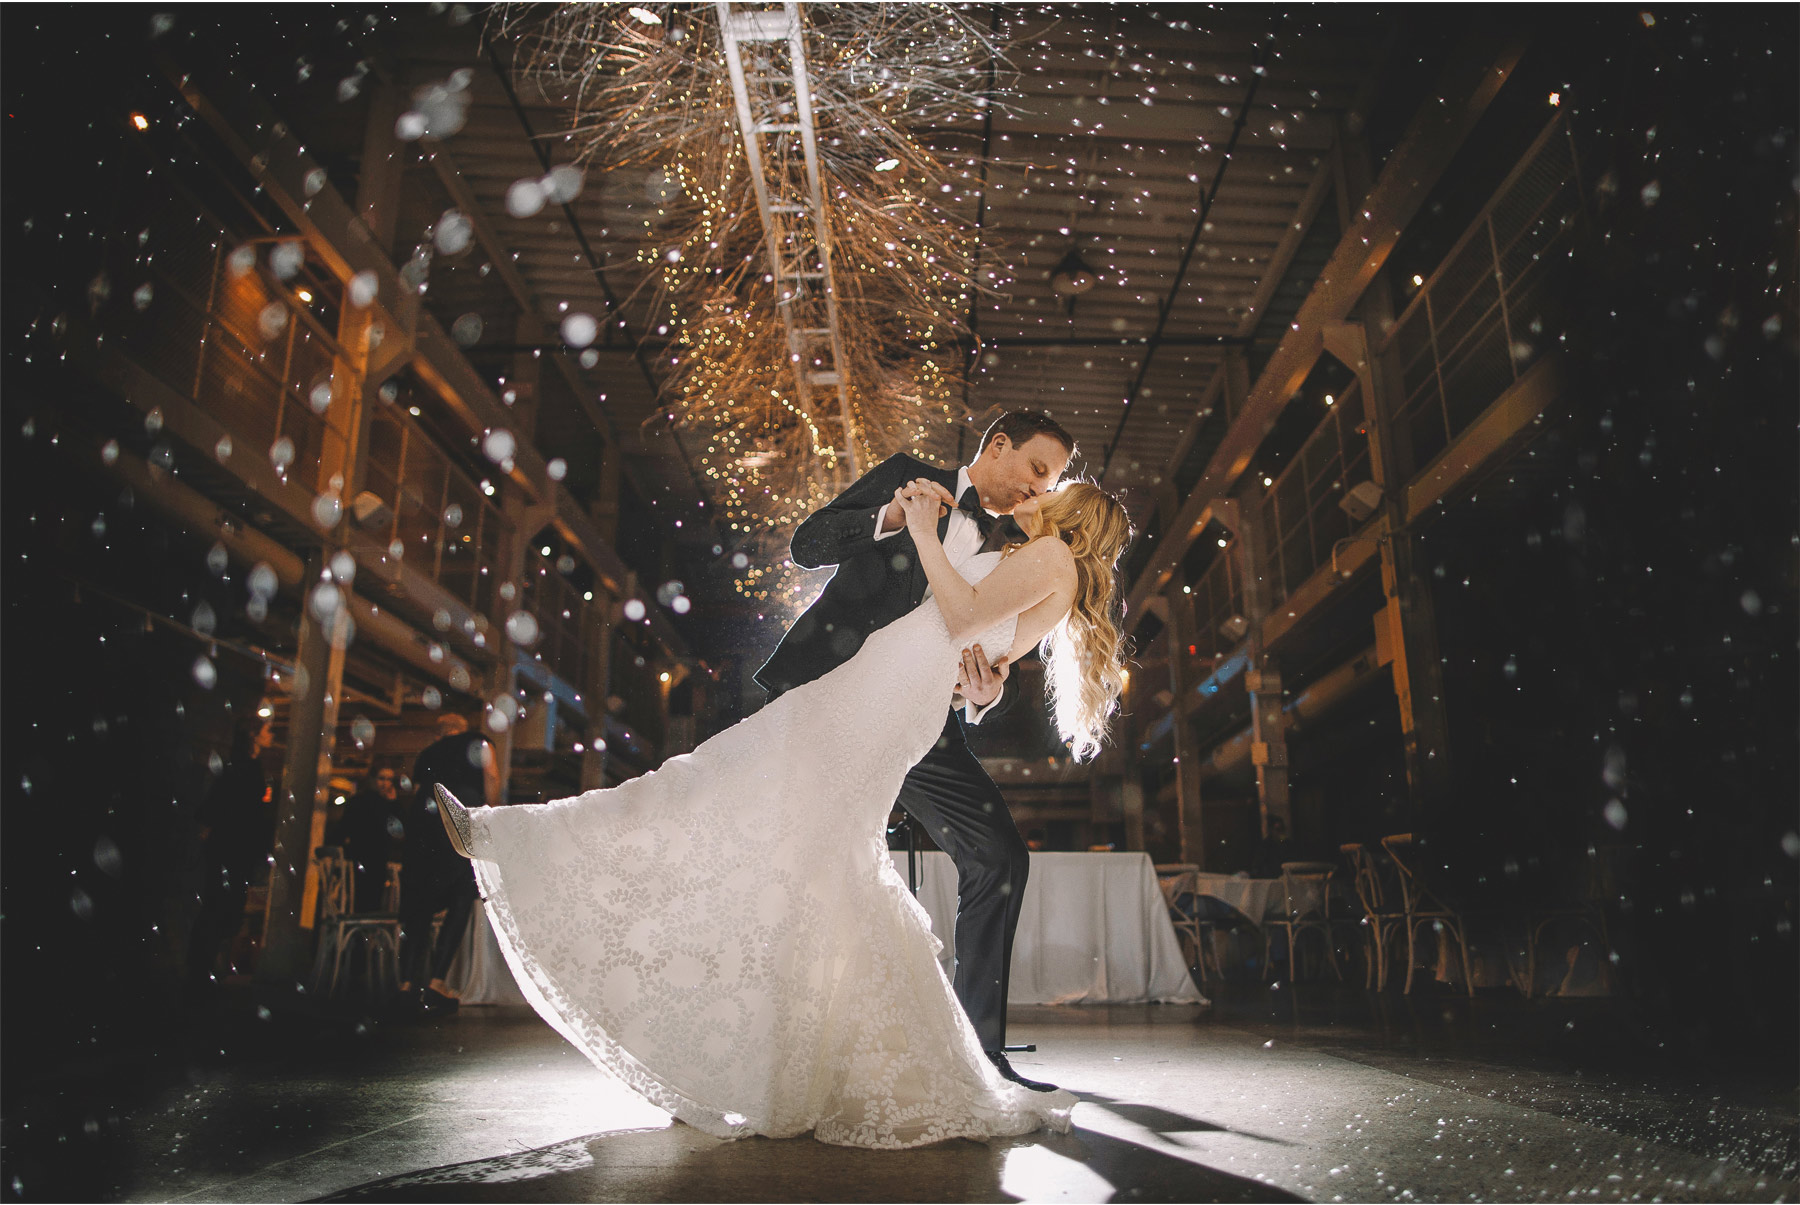 14-Minneapolis-Minnesota-Wedding-Photographer-by-Vick-Photography--Indoor-Snow-Bride-and-Groom-Winter-Wedding-Machine-Shop-Alyssa-and-Garron.jpg